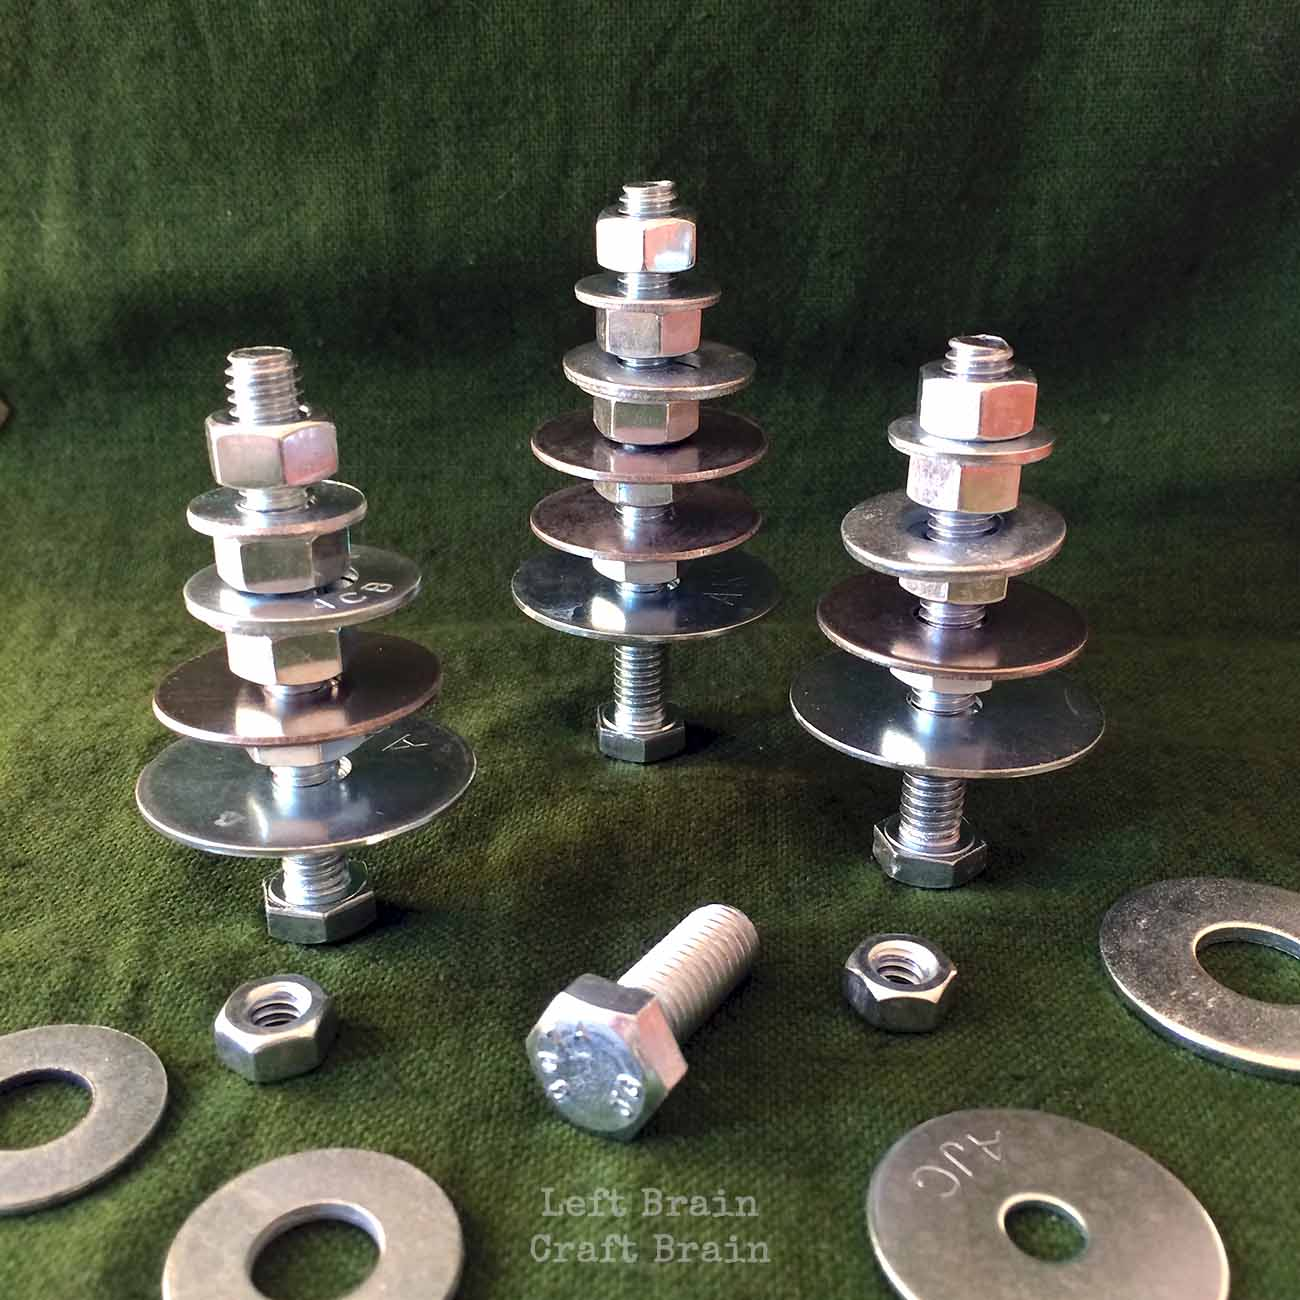 Pictures Of Nuts And Bolts >> Invitation to Build: Tinkering Trees - Left Brain Craft Brain